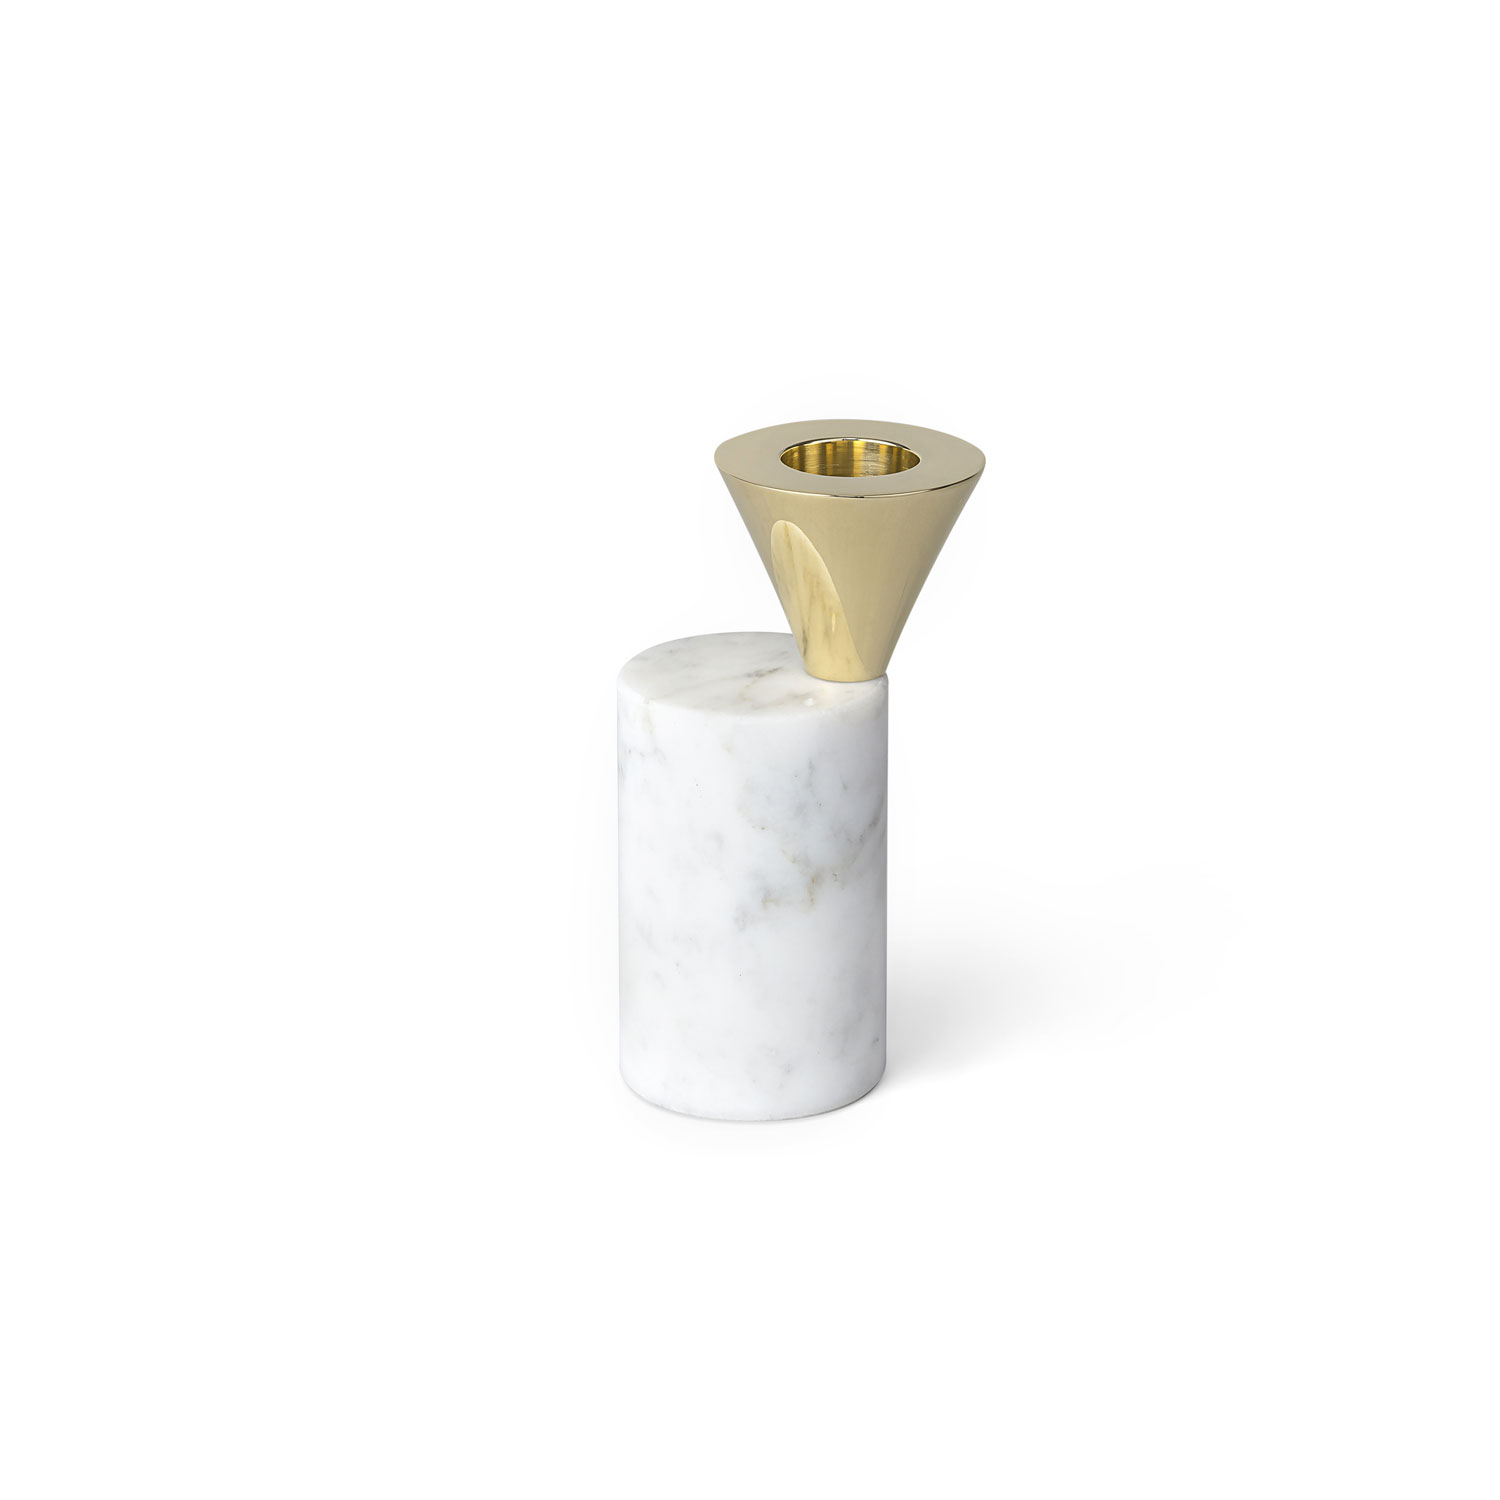 Skultuna-Streamers Candle Holder 70 B, White Marble